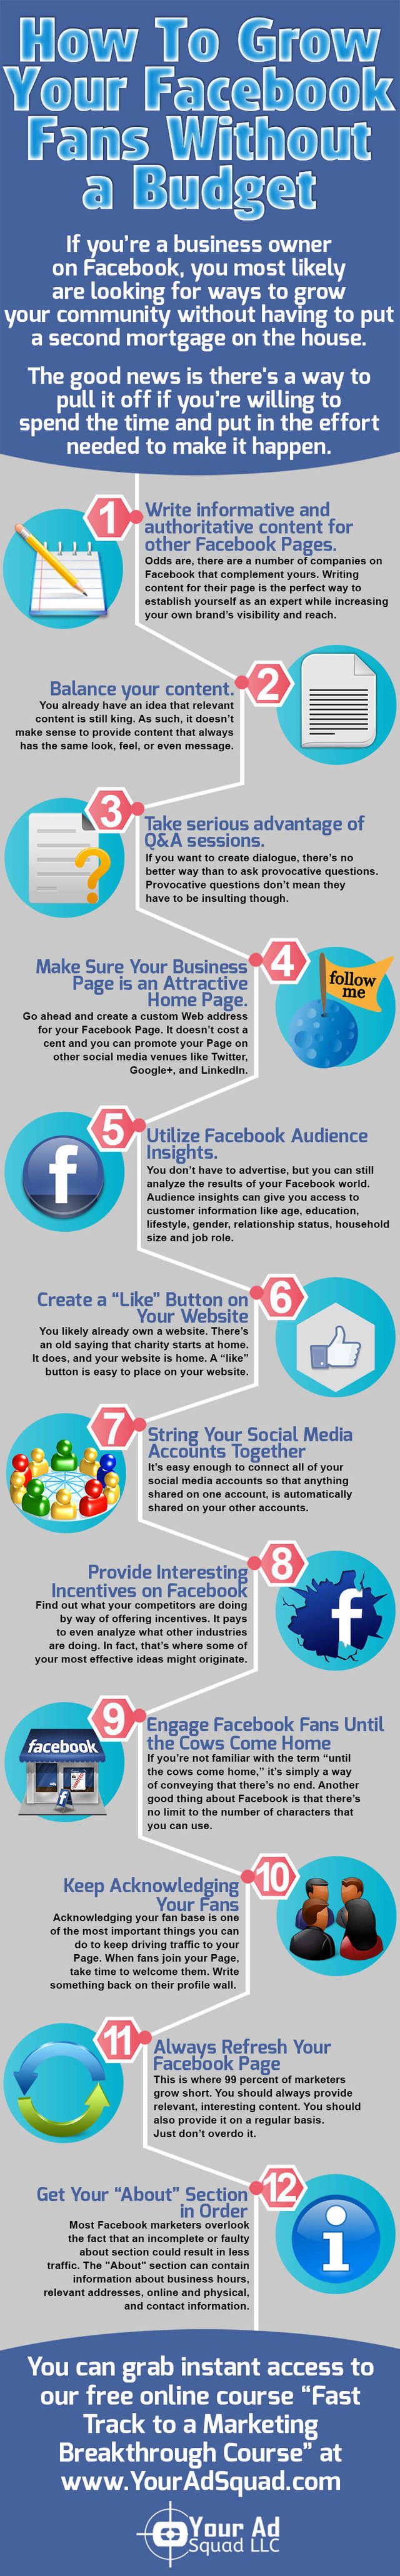 How to grow your facebook fans without a budget infographic